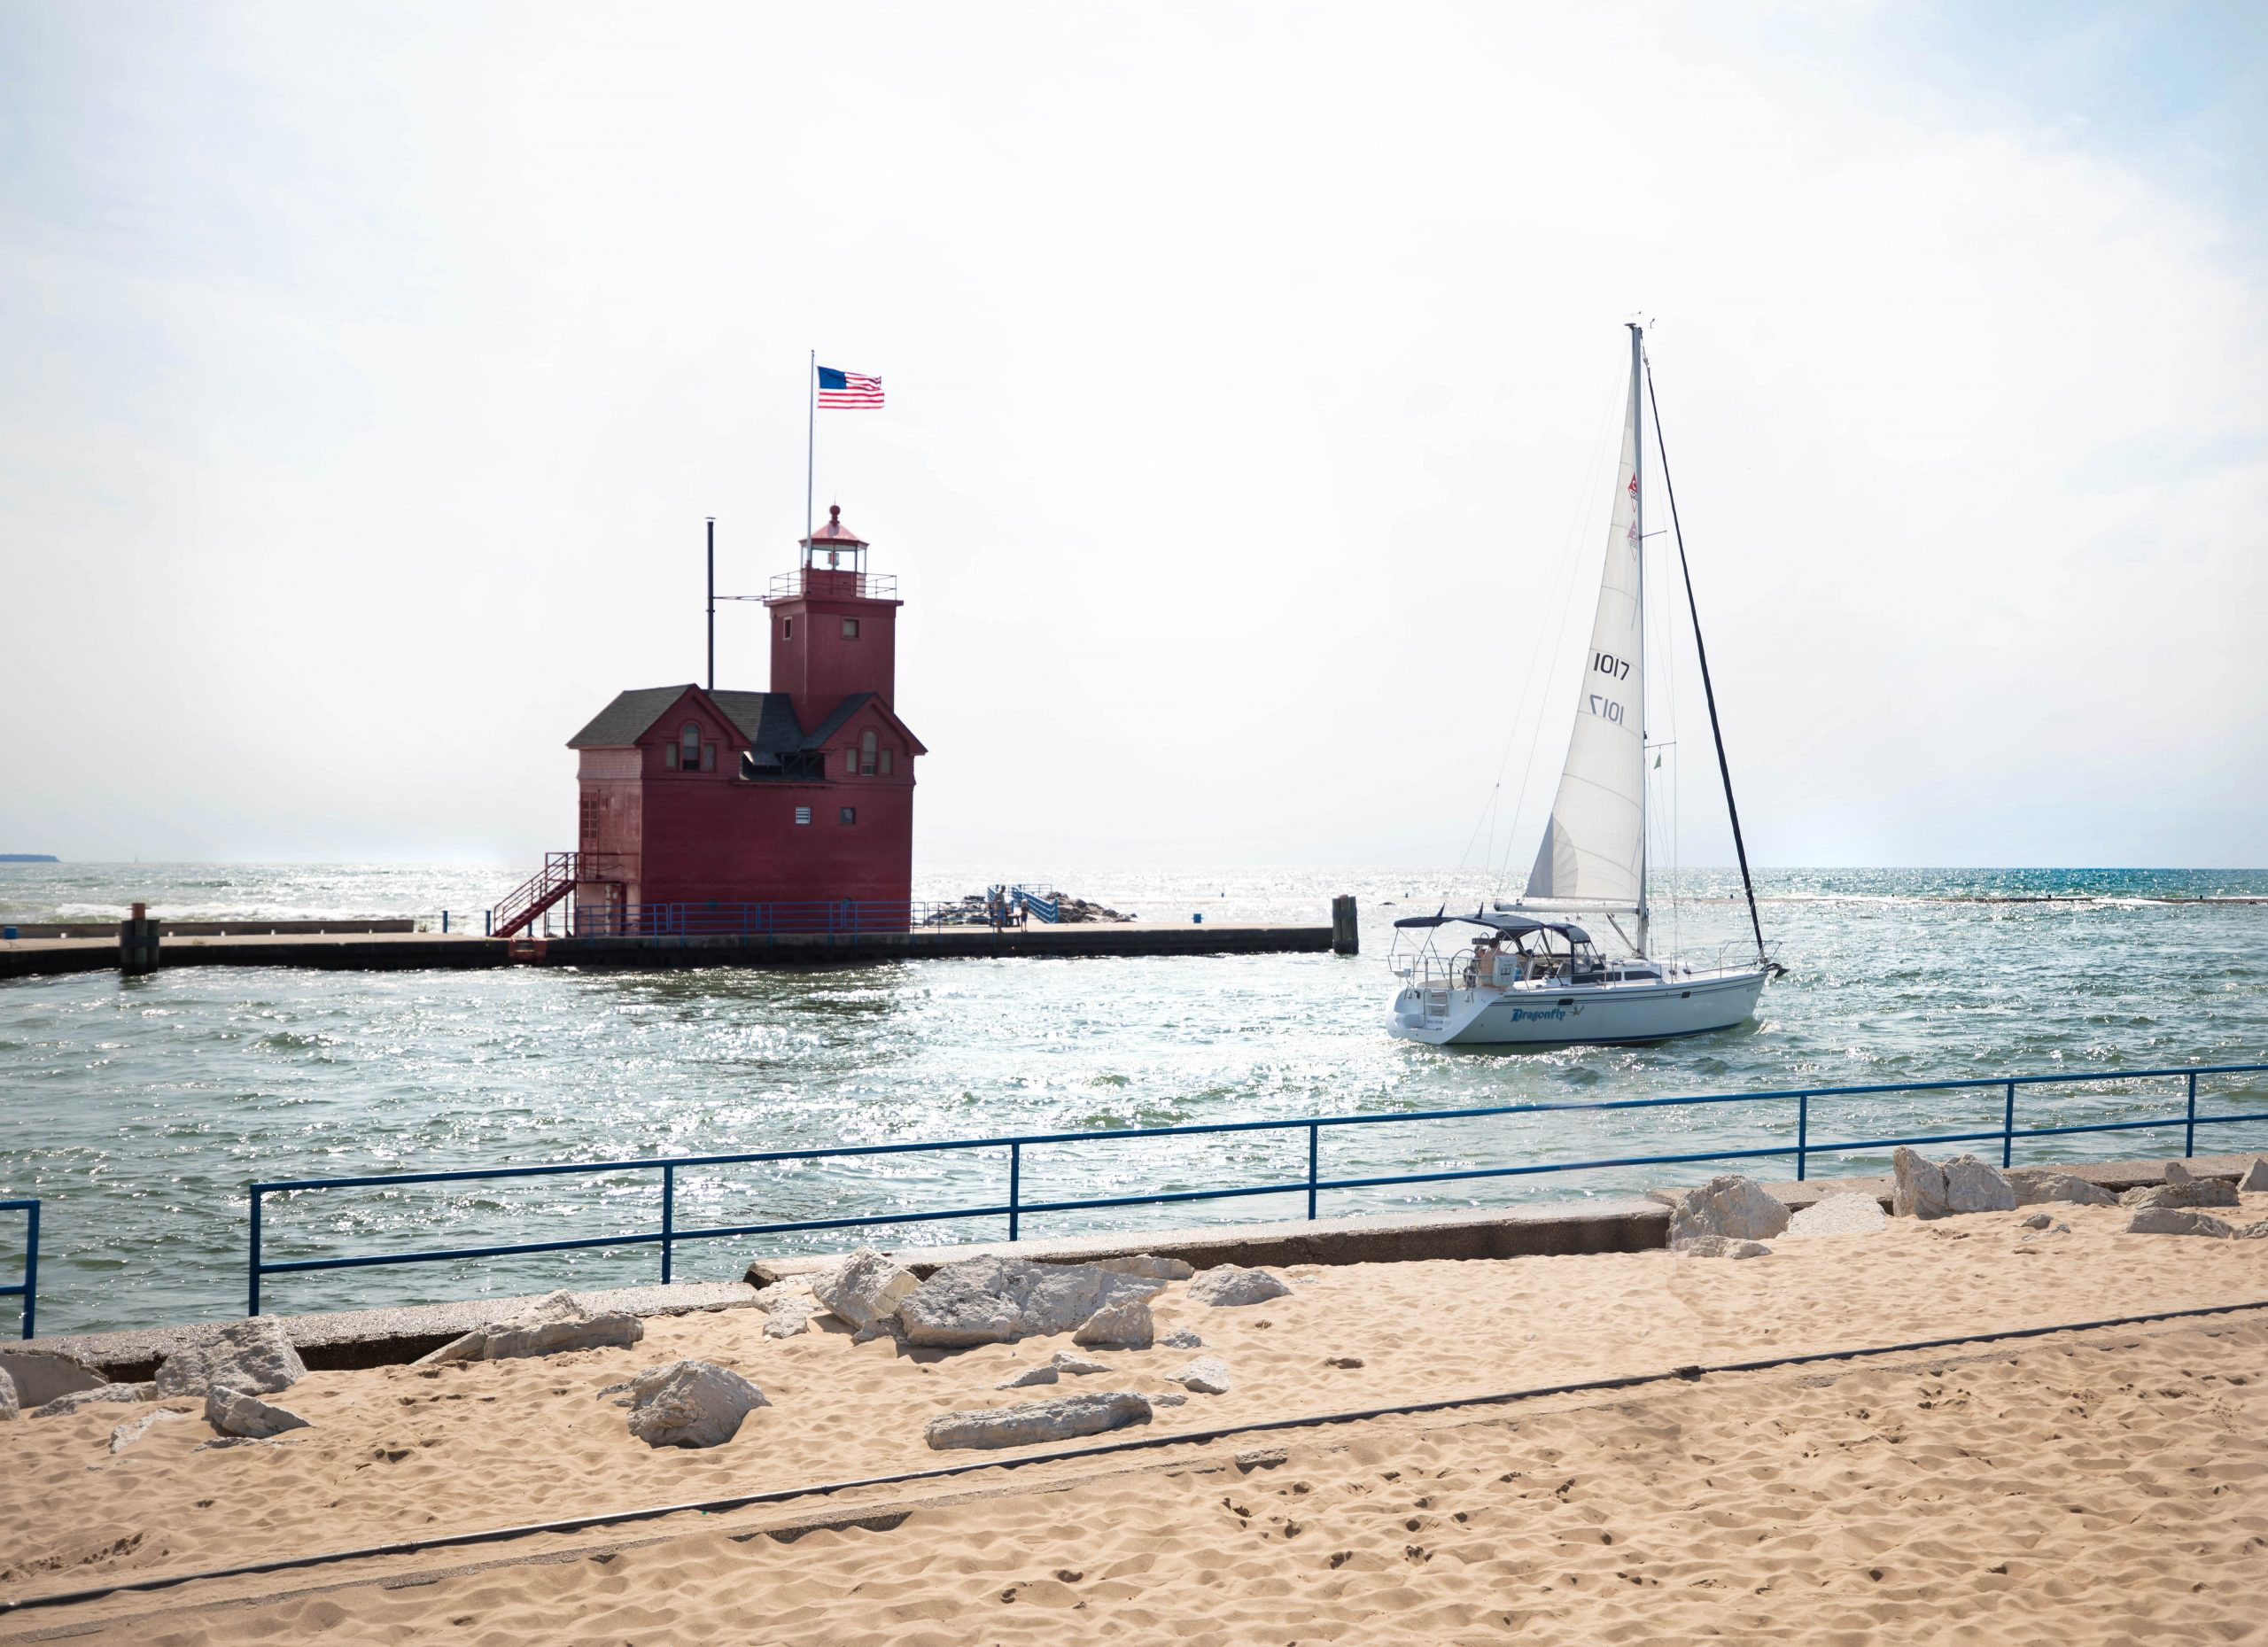 Holland State Park Red Lighthouse Holland Harbor Lighthouse and Sailboat by Annie Fairfax